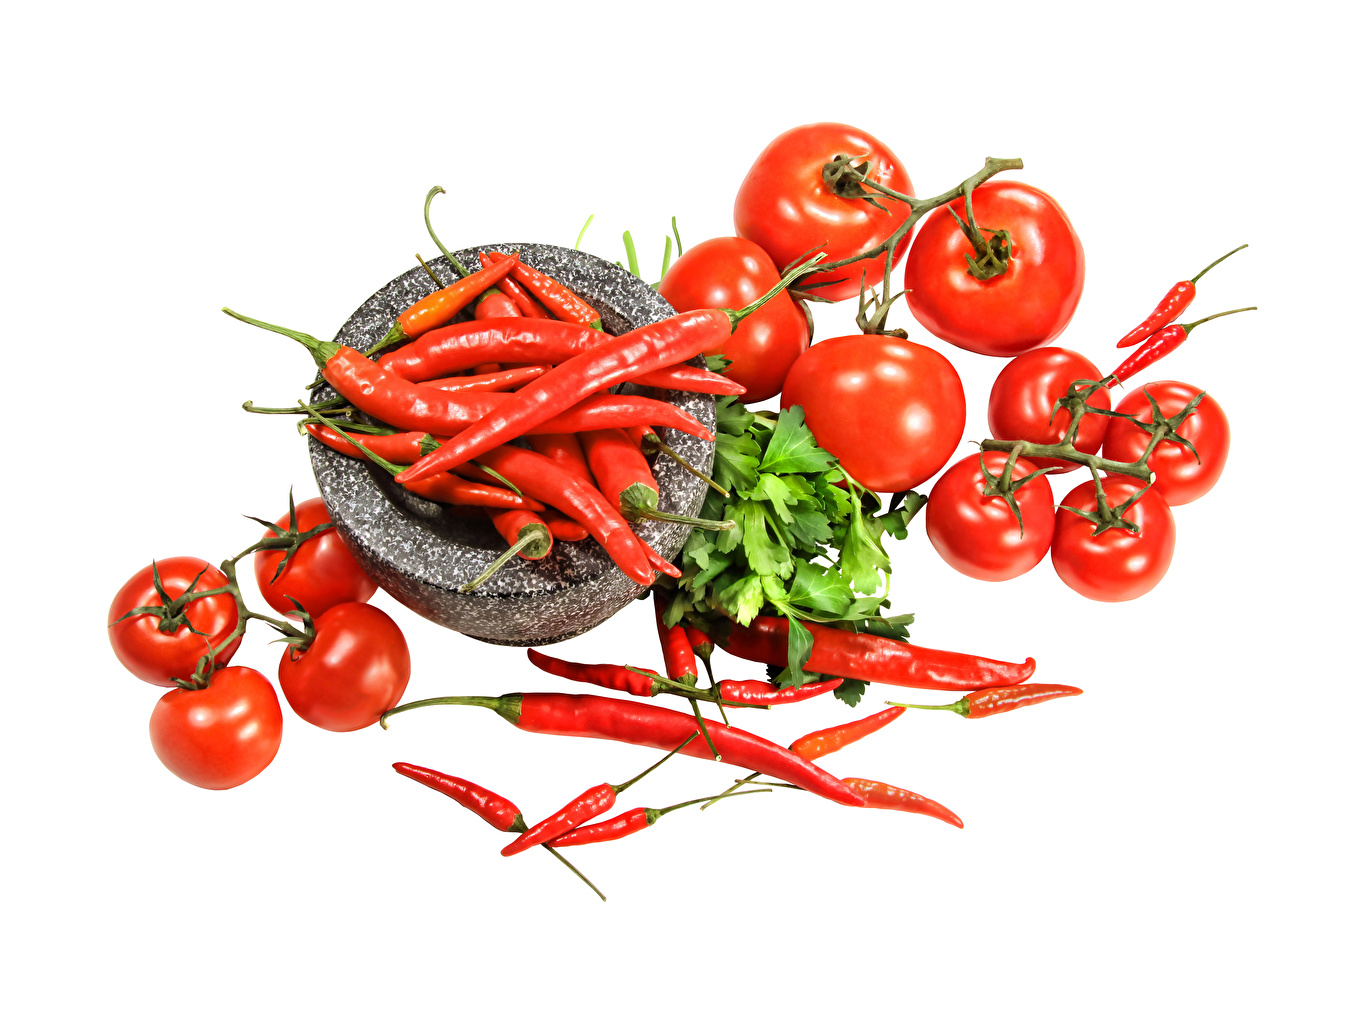 Picture Tomatoes Chili pepper Food White background